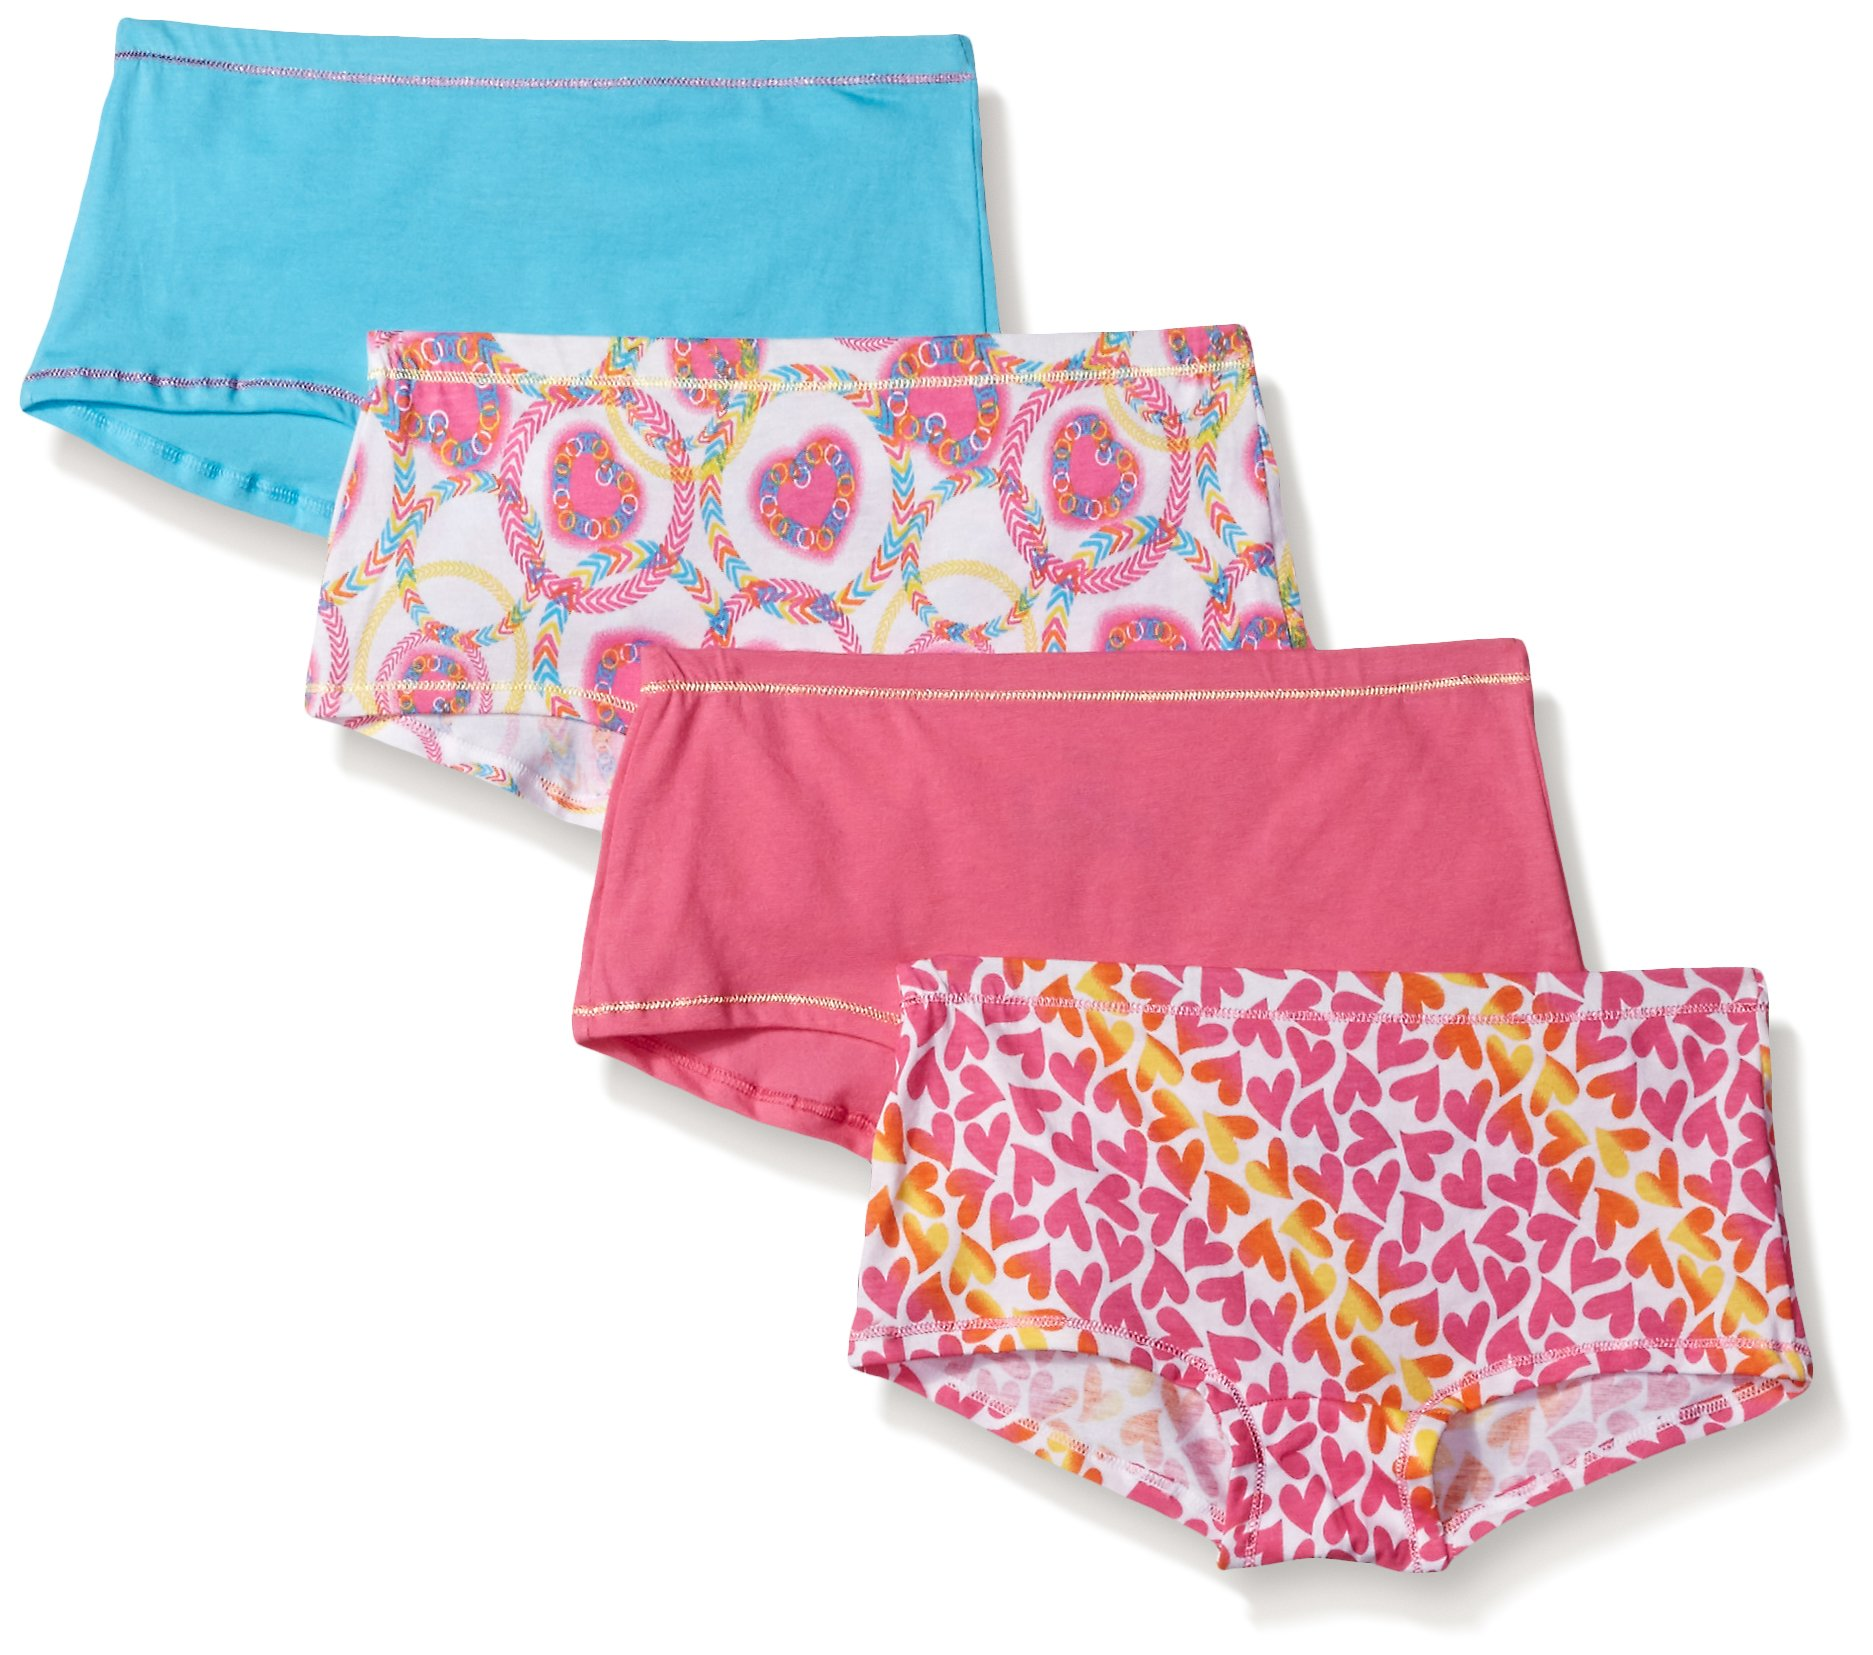 Hanes Ultimate Girls' 4-Pack Cotton Stretch Boy Short Panties, Assorted, 16